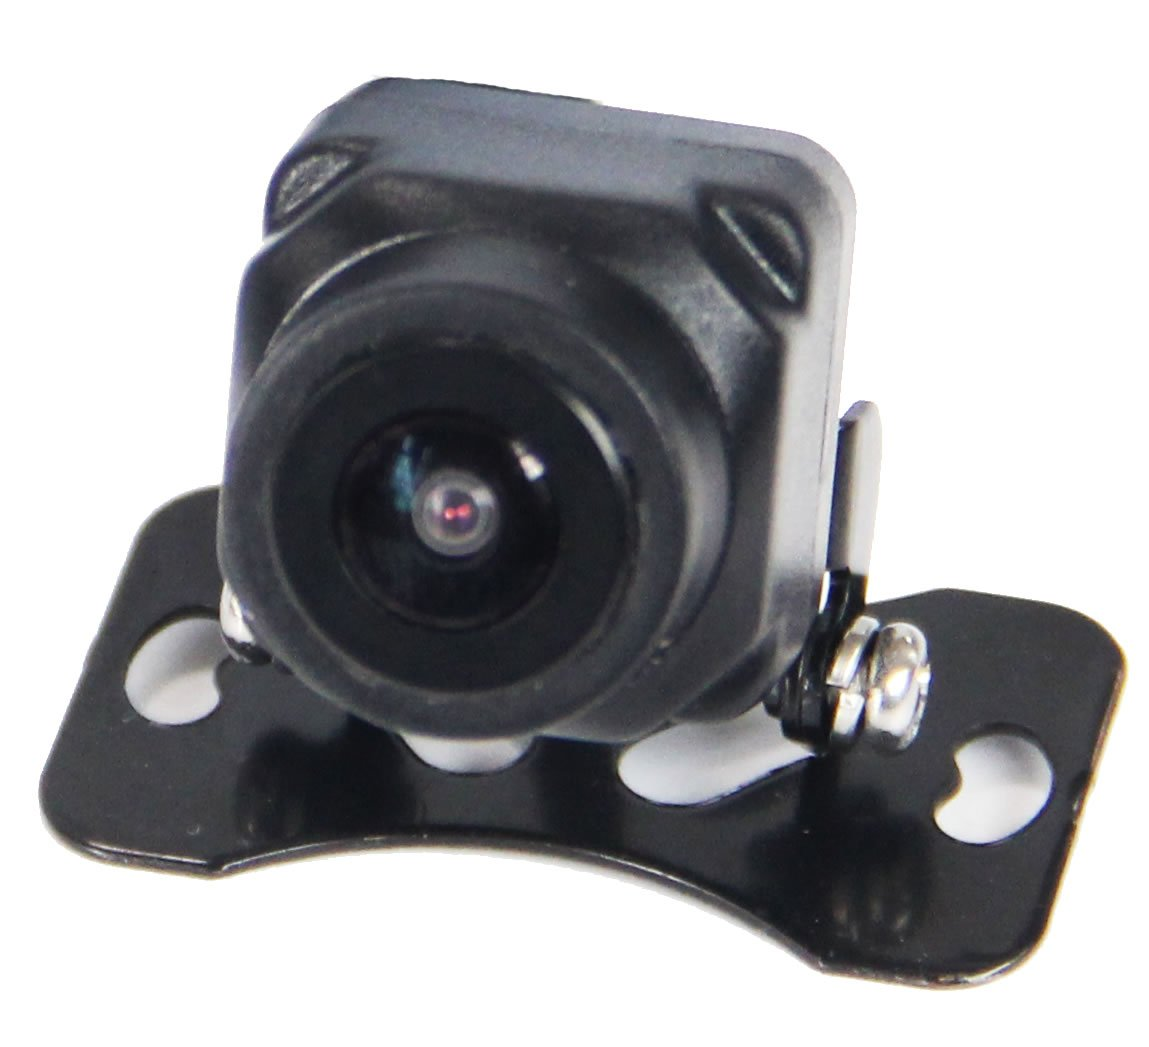 BOYO VTB110N Front Wide Angle Split Cover View Camera